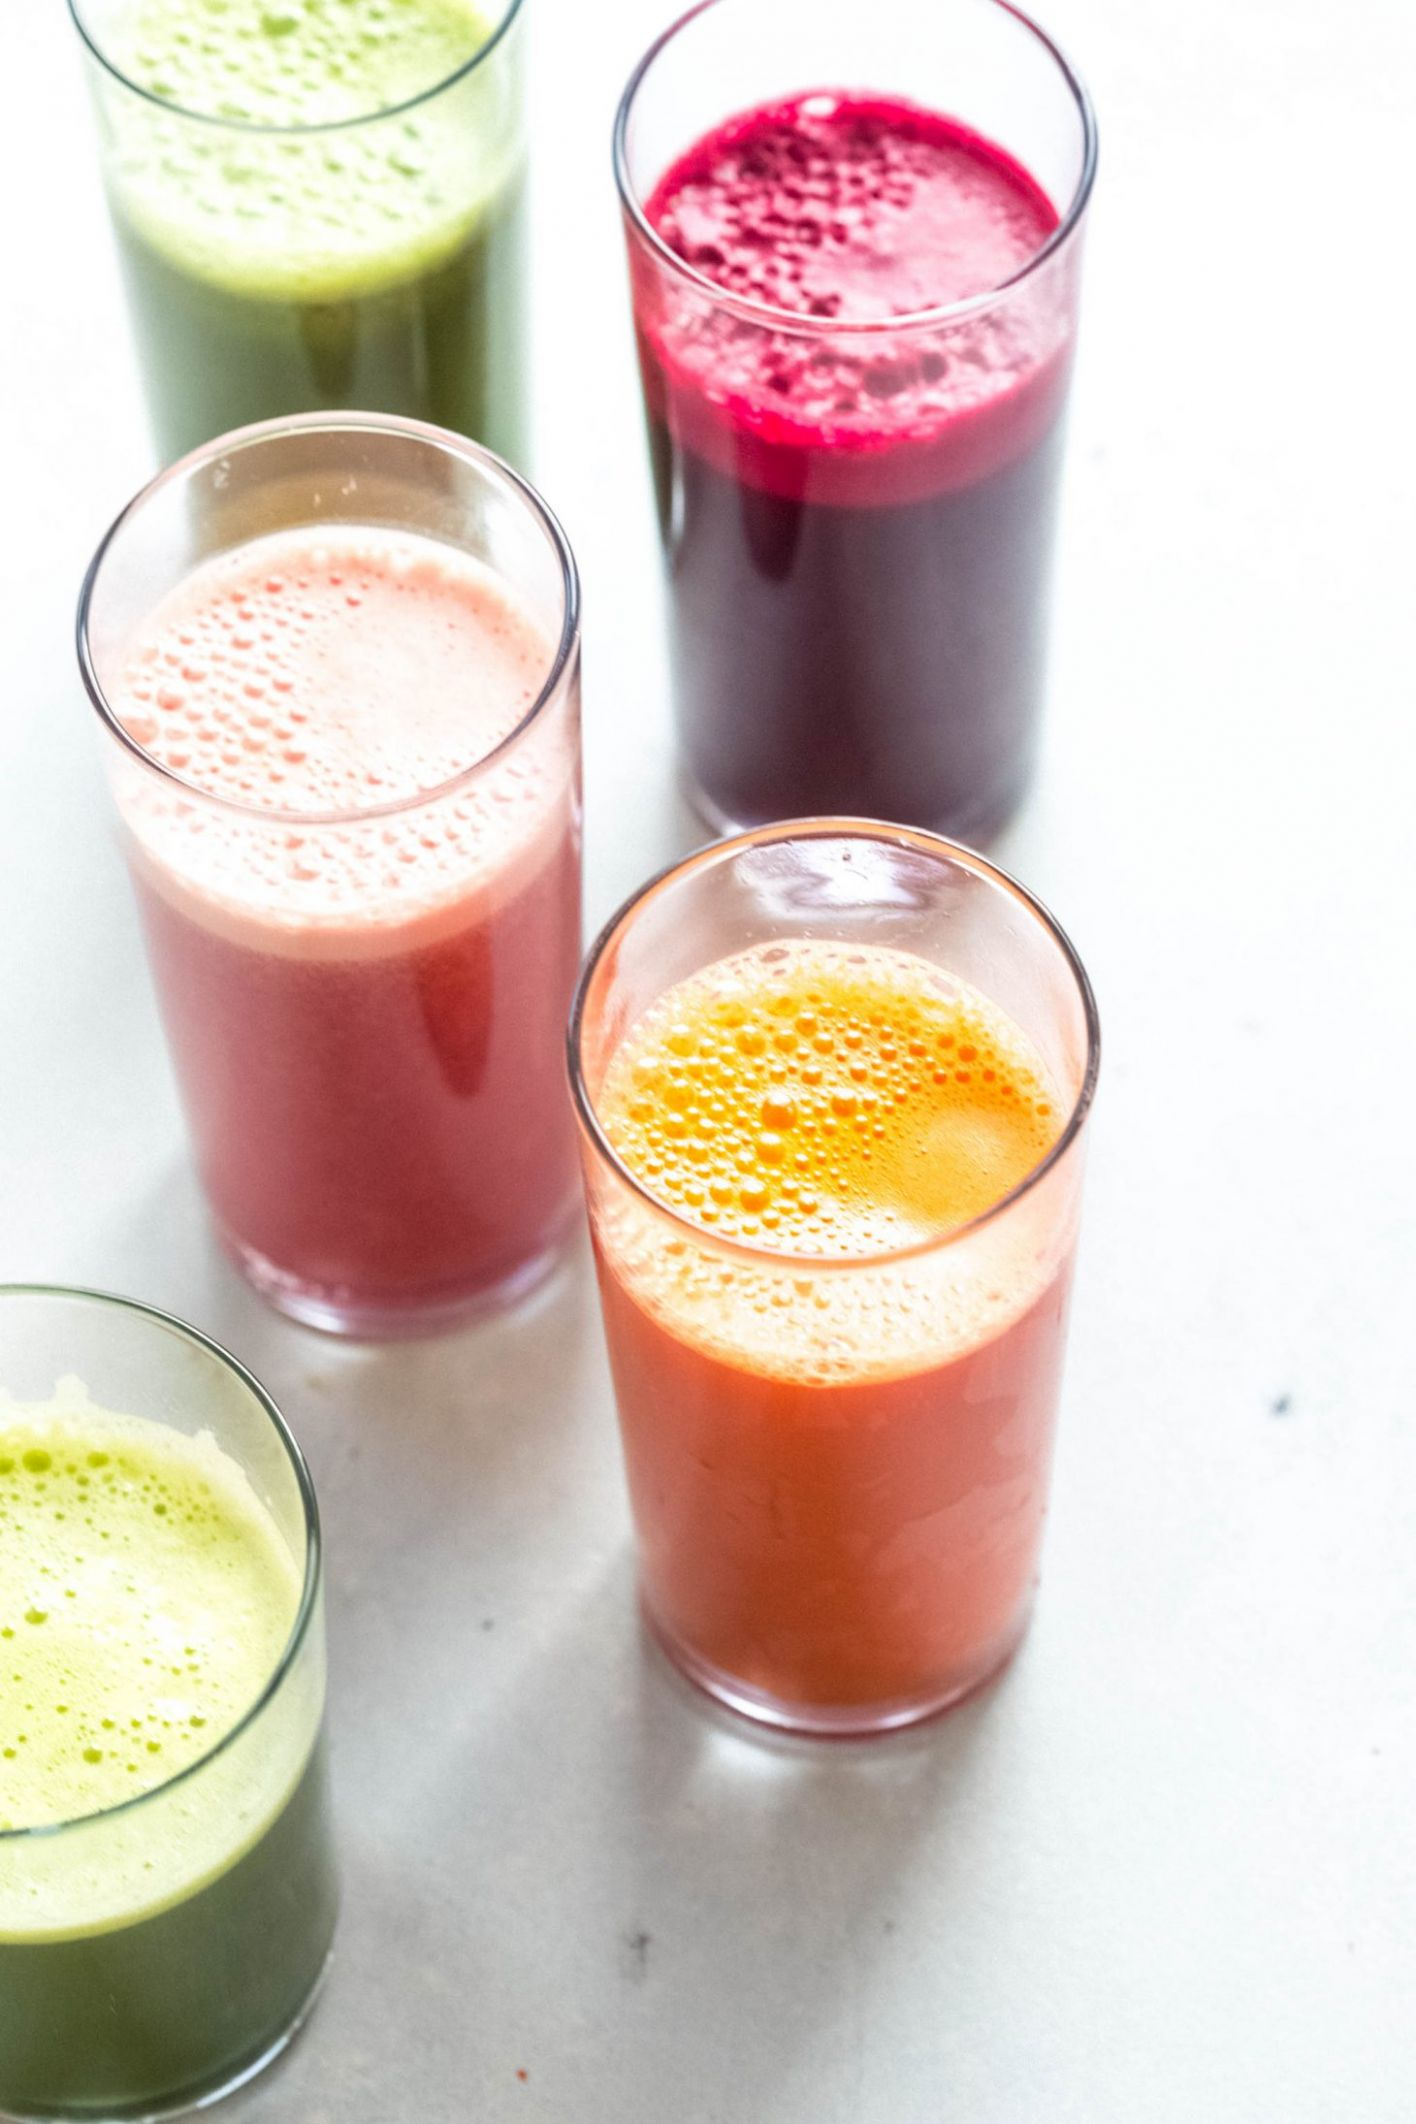 Healthy Juicing Recipes // Juice Cleanse | Platings + Pairings - Healthy Recipes Drinks